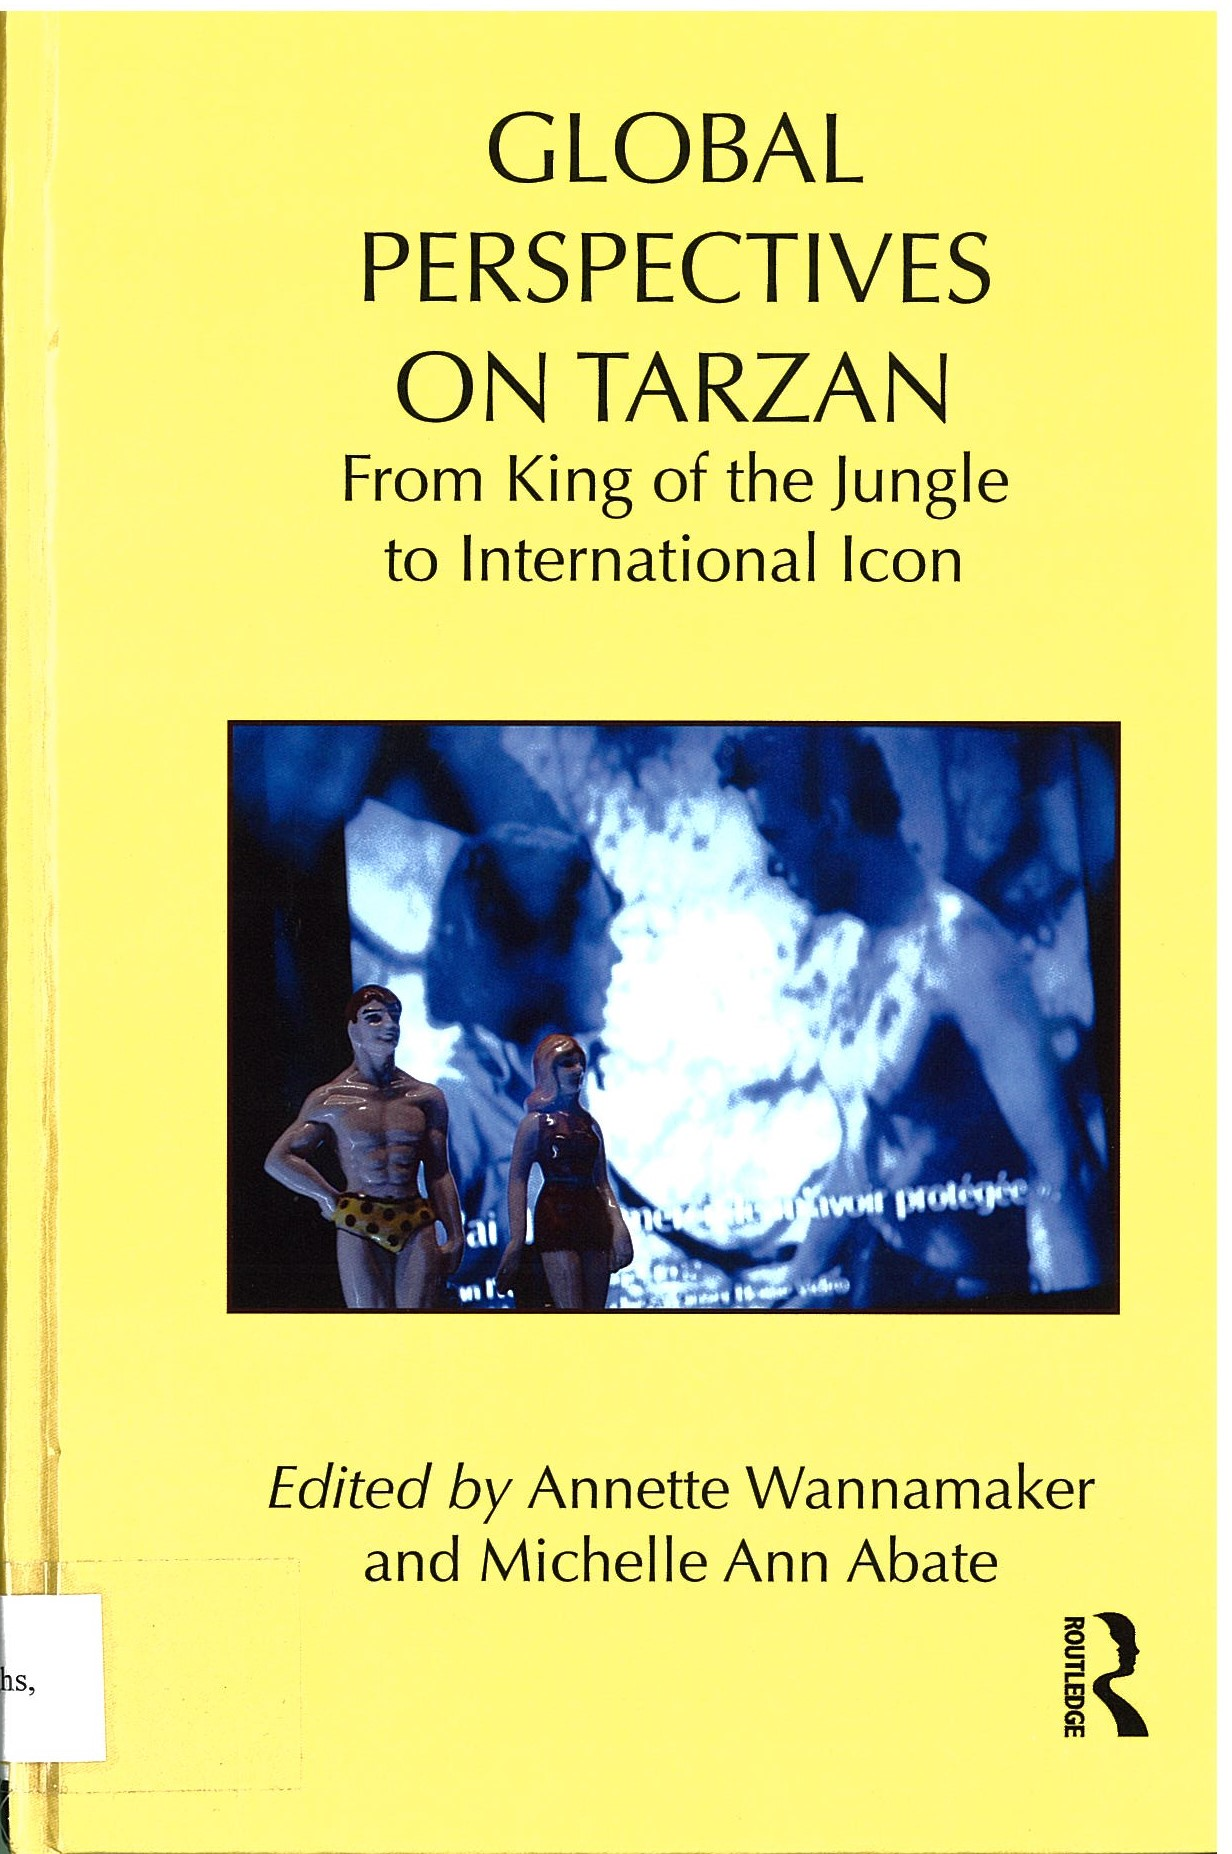 Global Perspectives on Tarzan - From King of the Jungle to International Icon